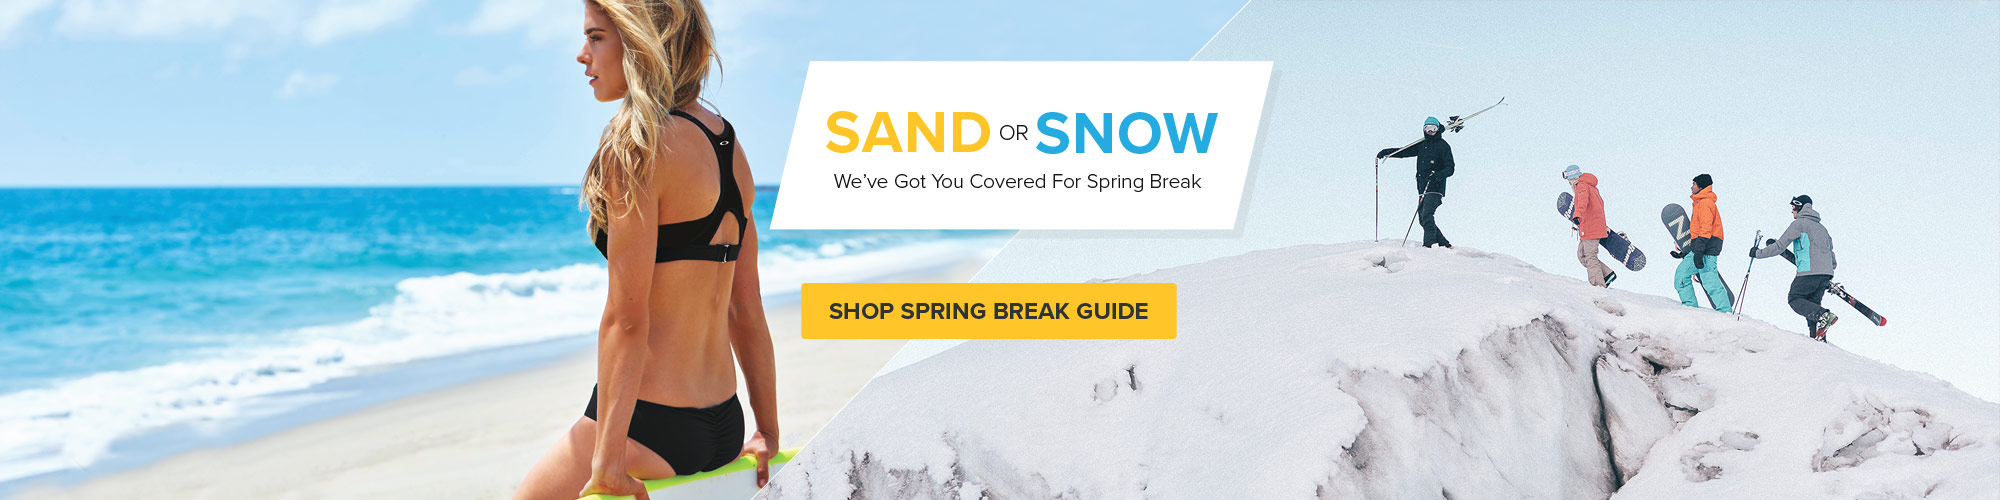 Spring Break Guide - Shop Now